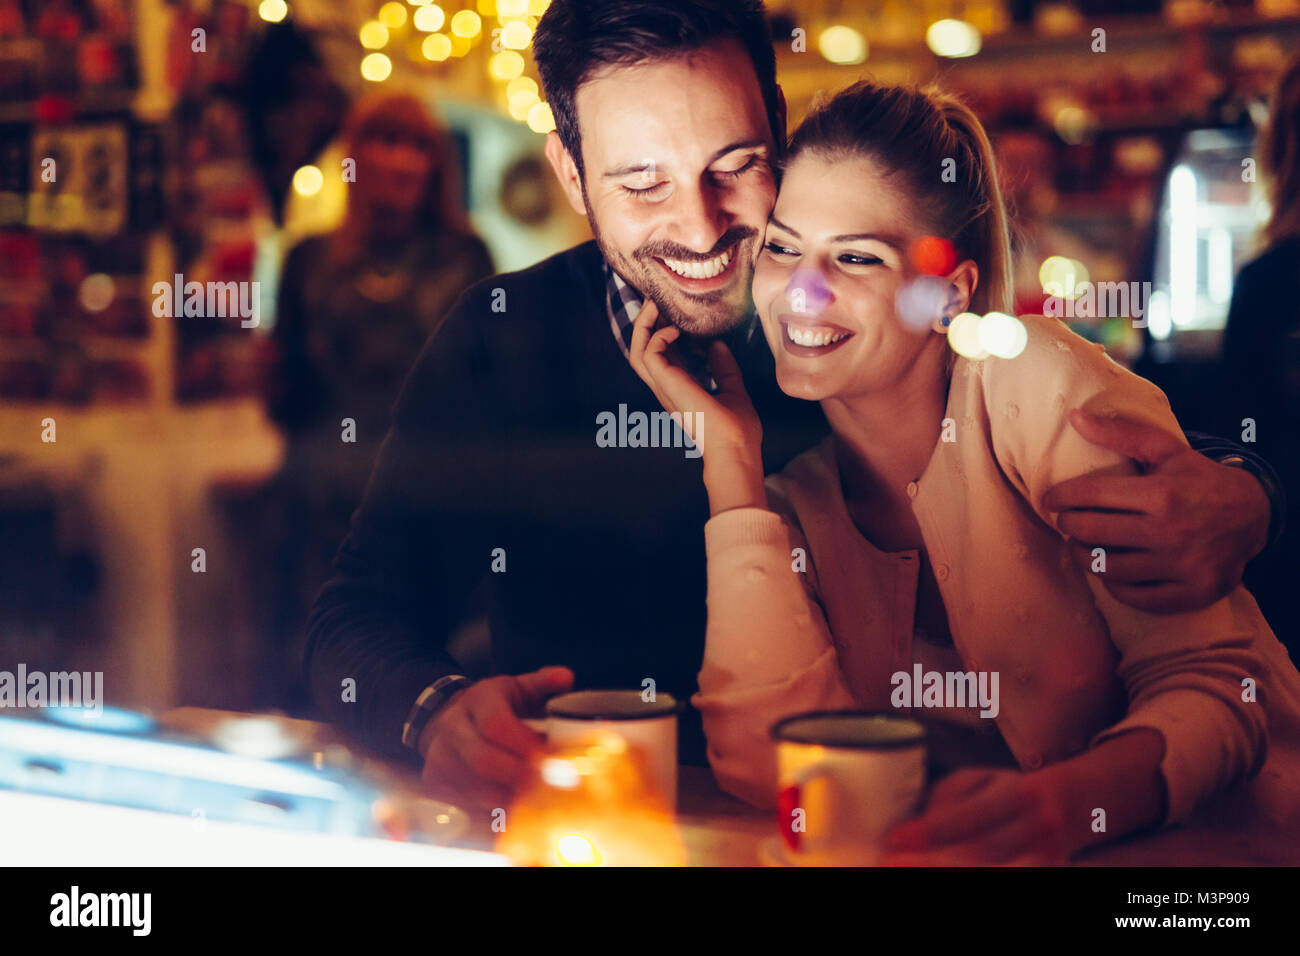 Romantic couple dating in pub at night - Stock Image